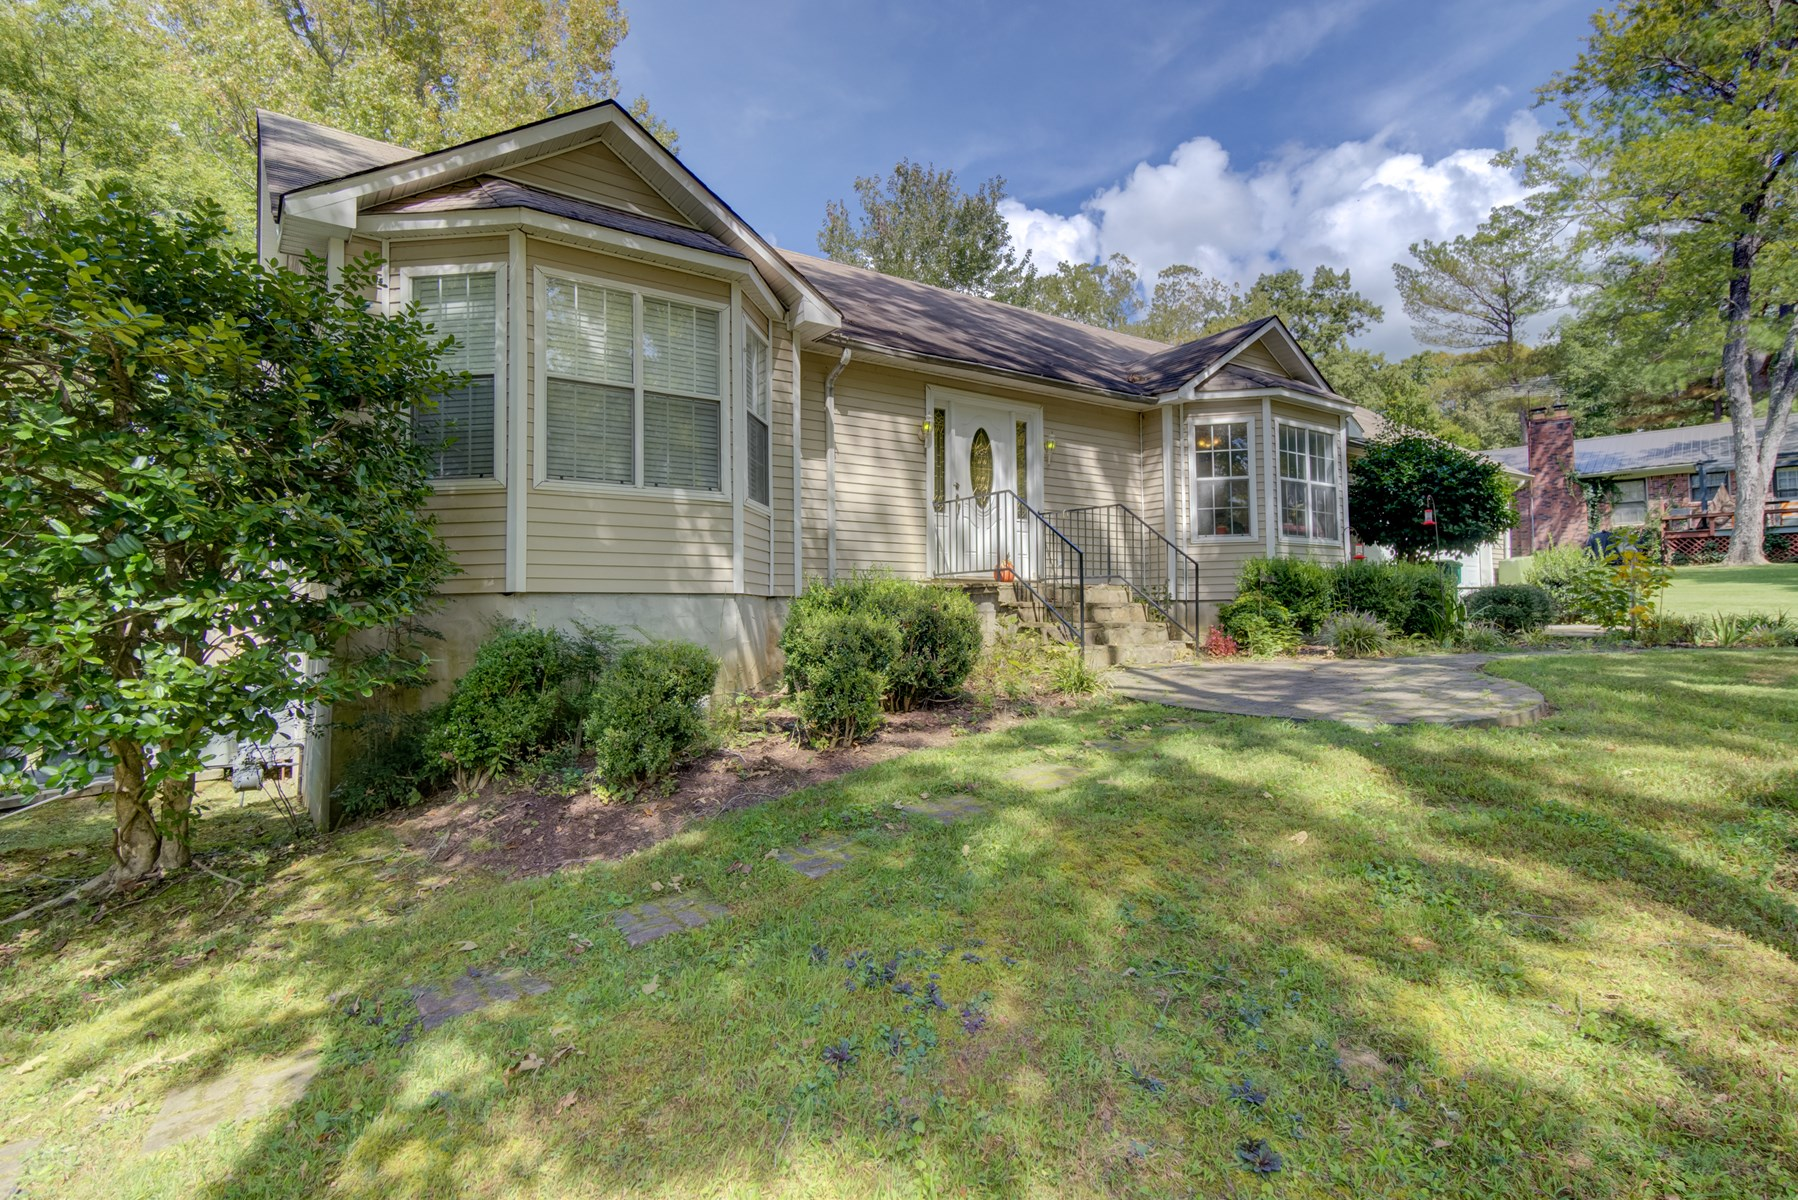 4 BR 3 BA in Jackson located south Jackson